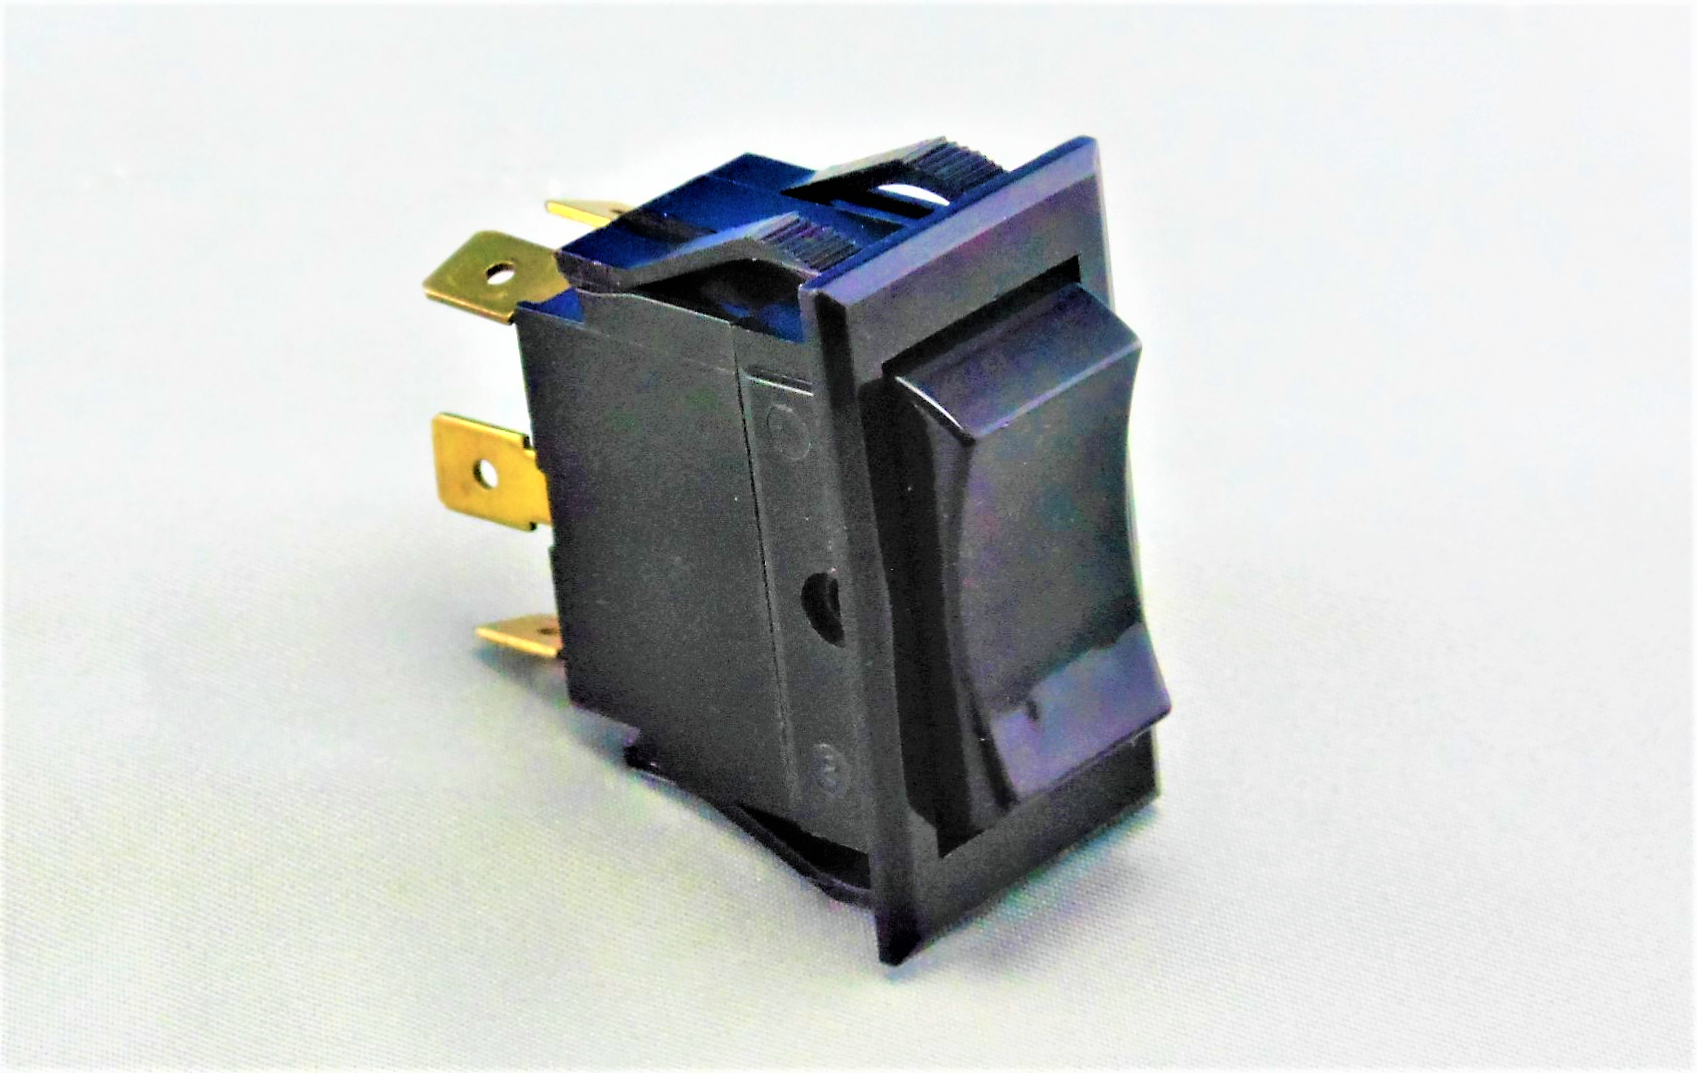 TIGM51-6S-BL-NBL Power Rocker Switch